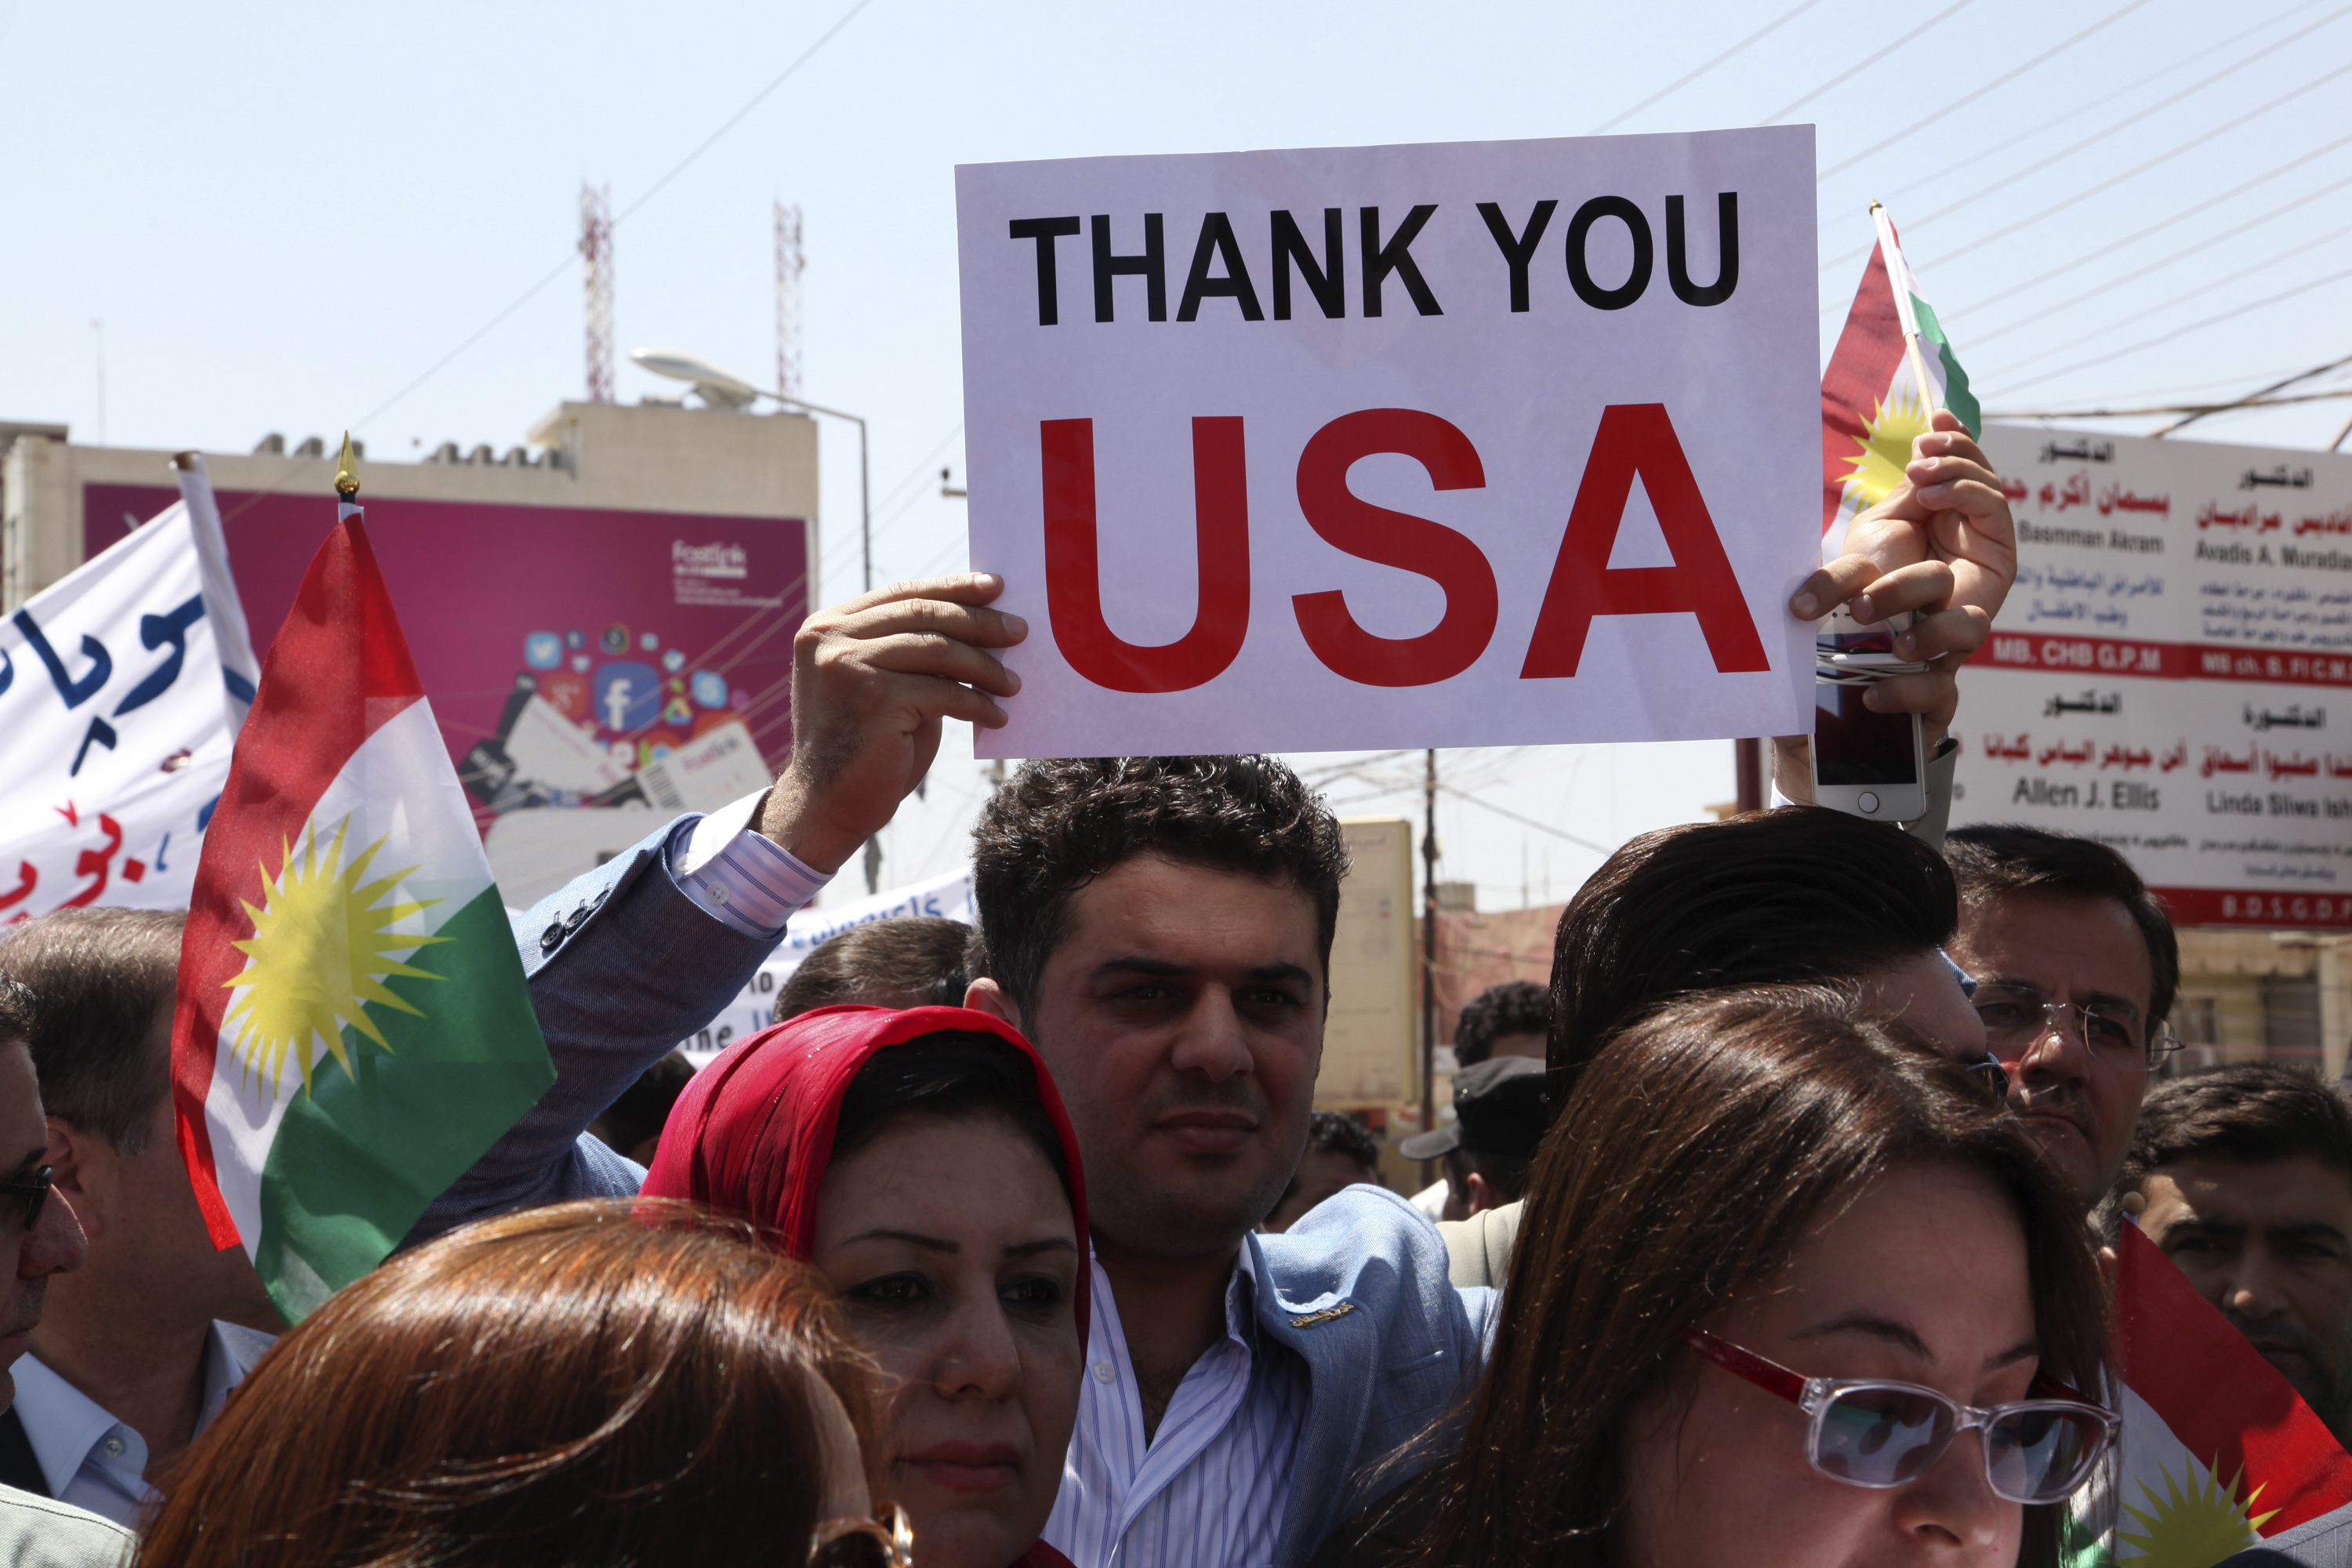 A Kurdish resident holds a signs during a demonstration in support of peshmerga troops in front of the US consulate in Erbil, Iraq.